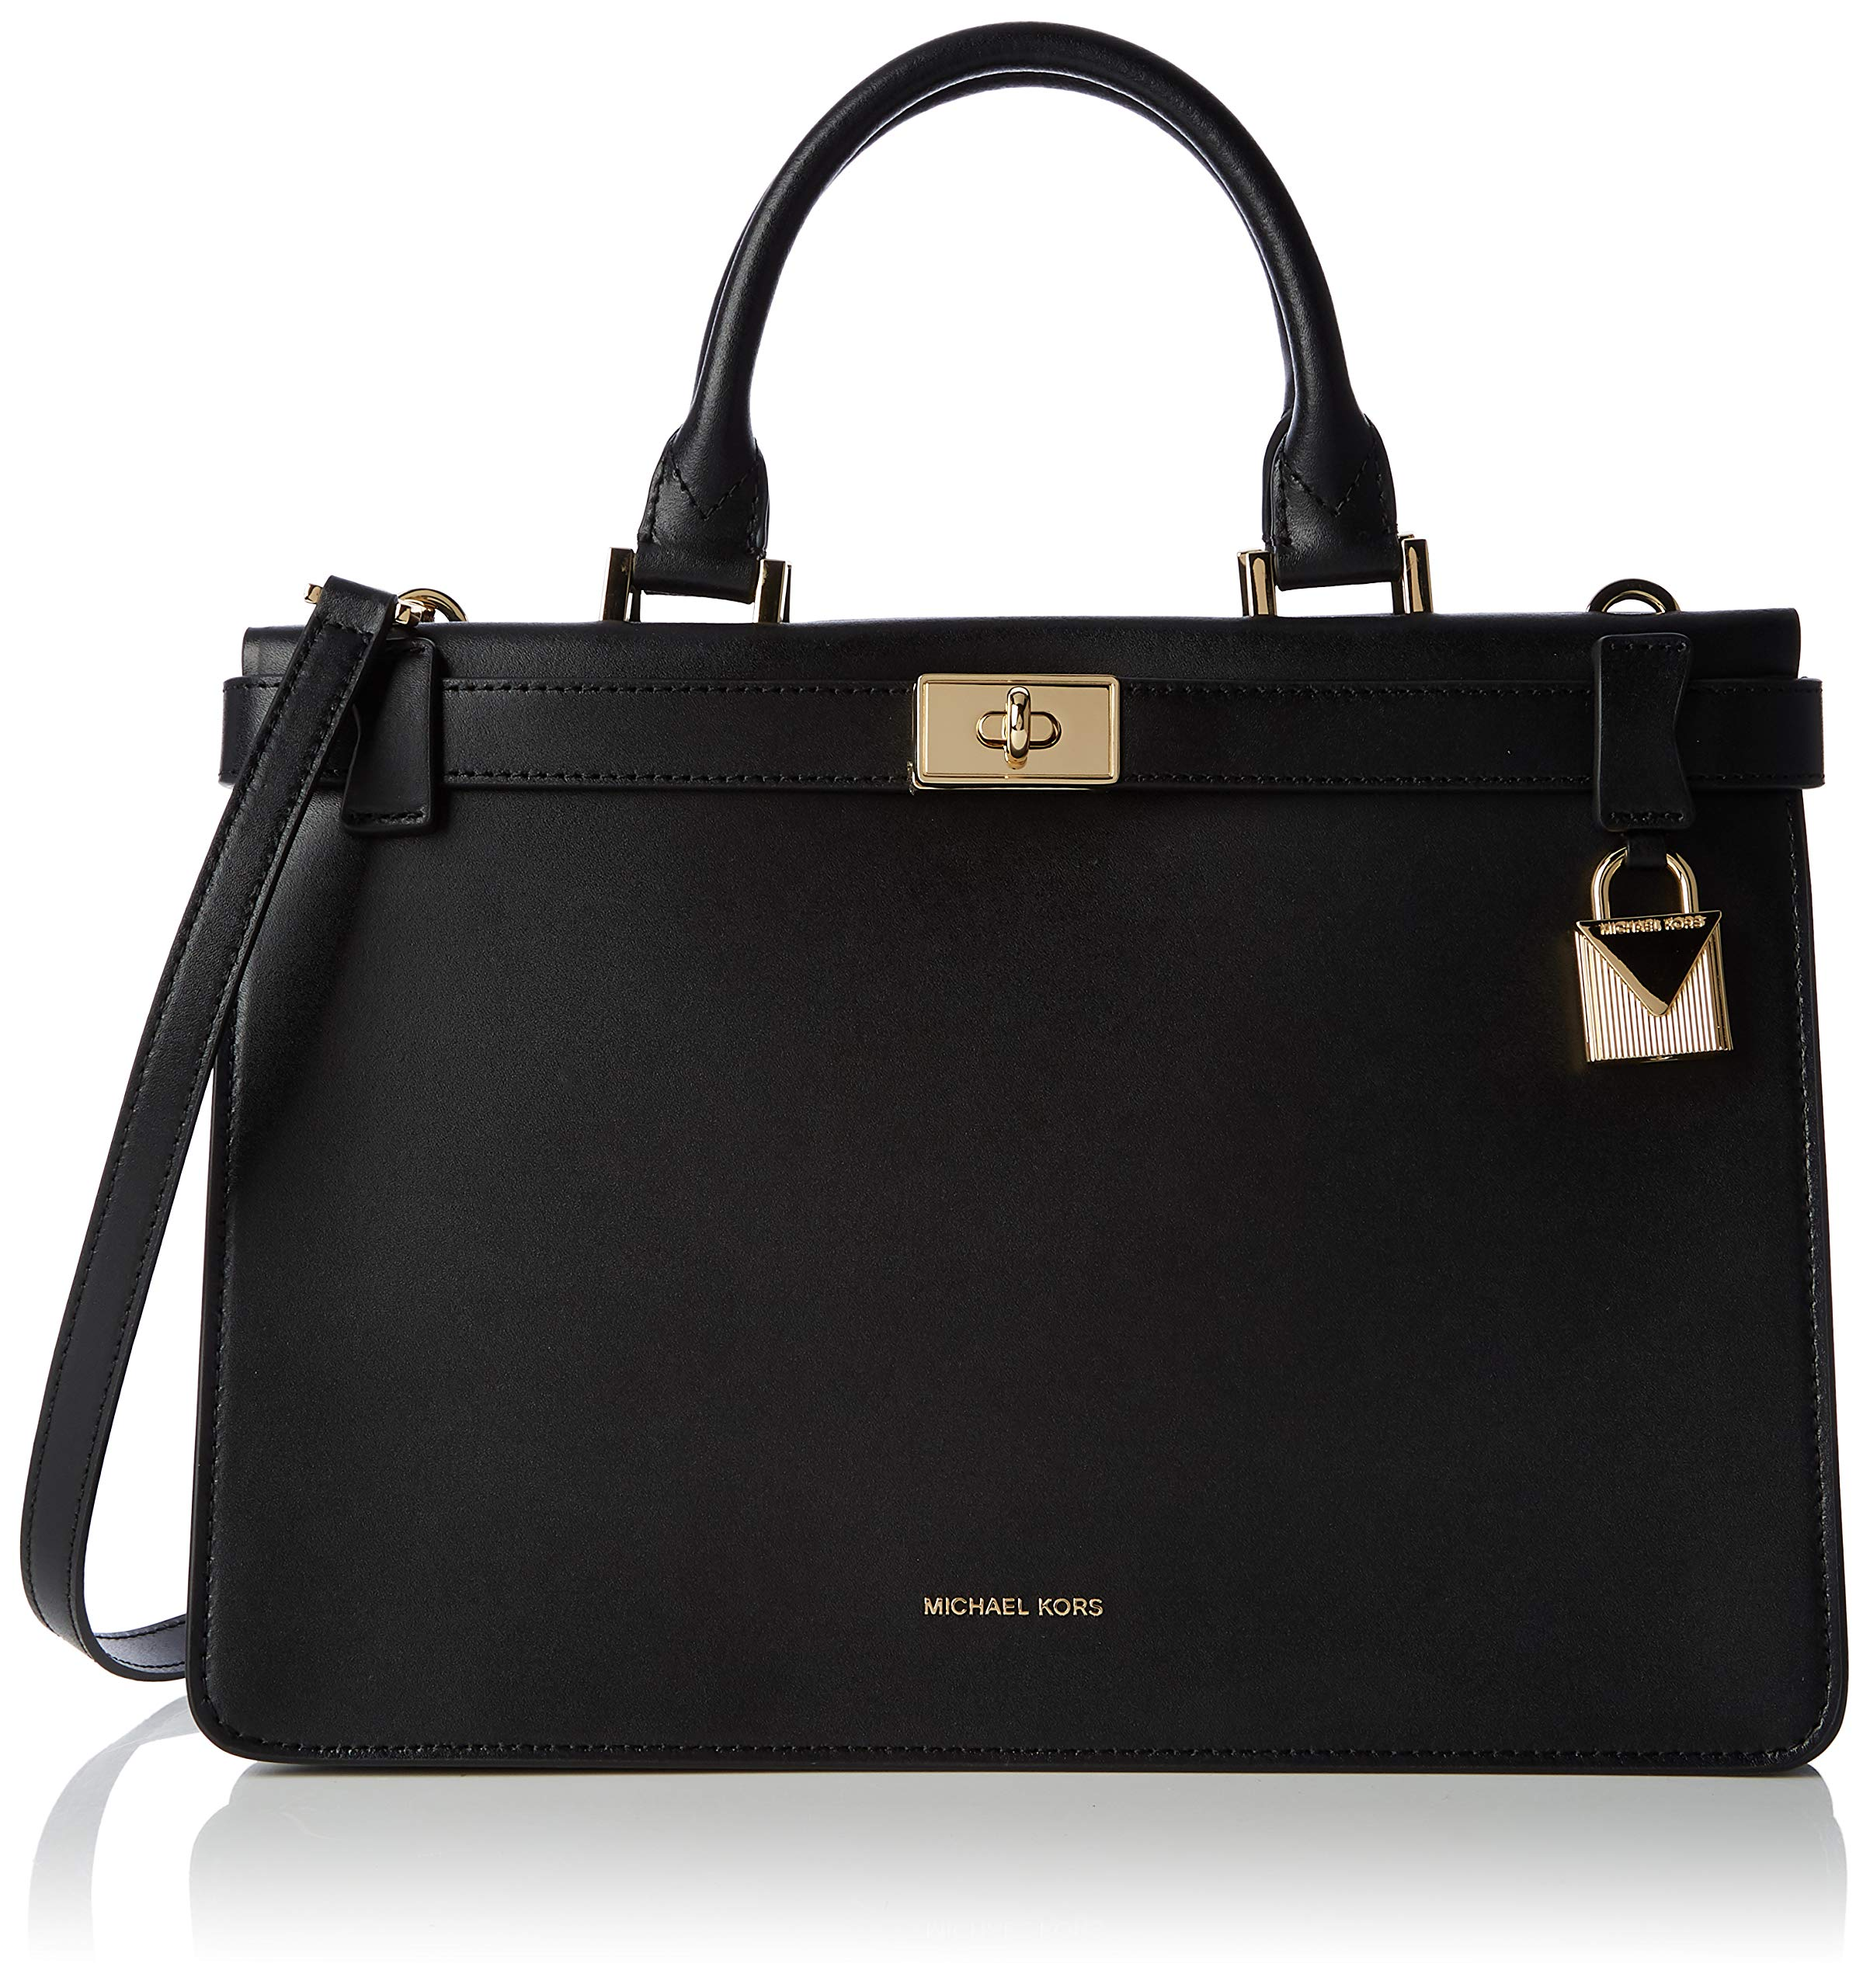 Michael Tatiana FemmeNoirblack11 H 9x32 4 Kors Cmb T SatchelCartables Medium 4x22 X Leather XZukwOPiT